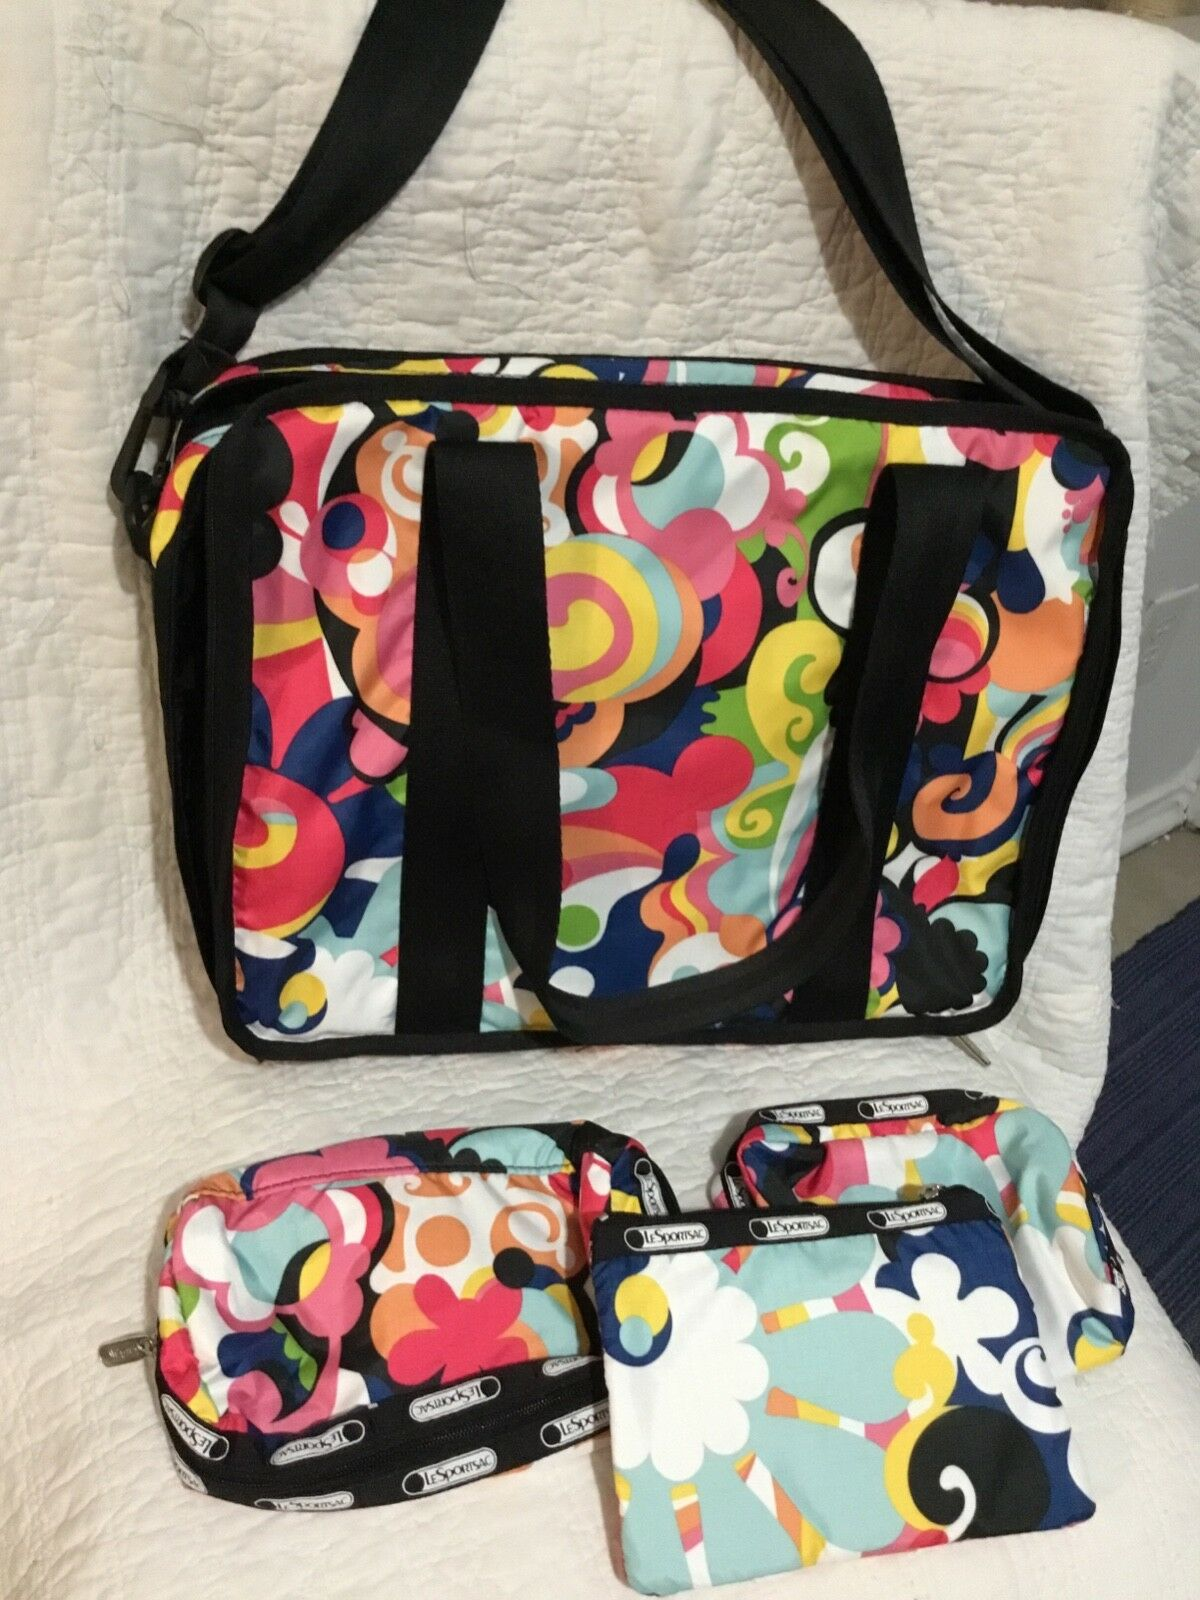 LeSportSac Floral Print Carry All With 3 Smaller Bags